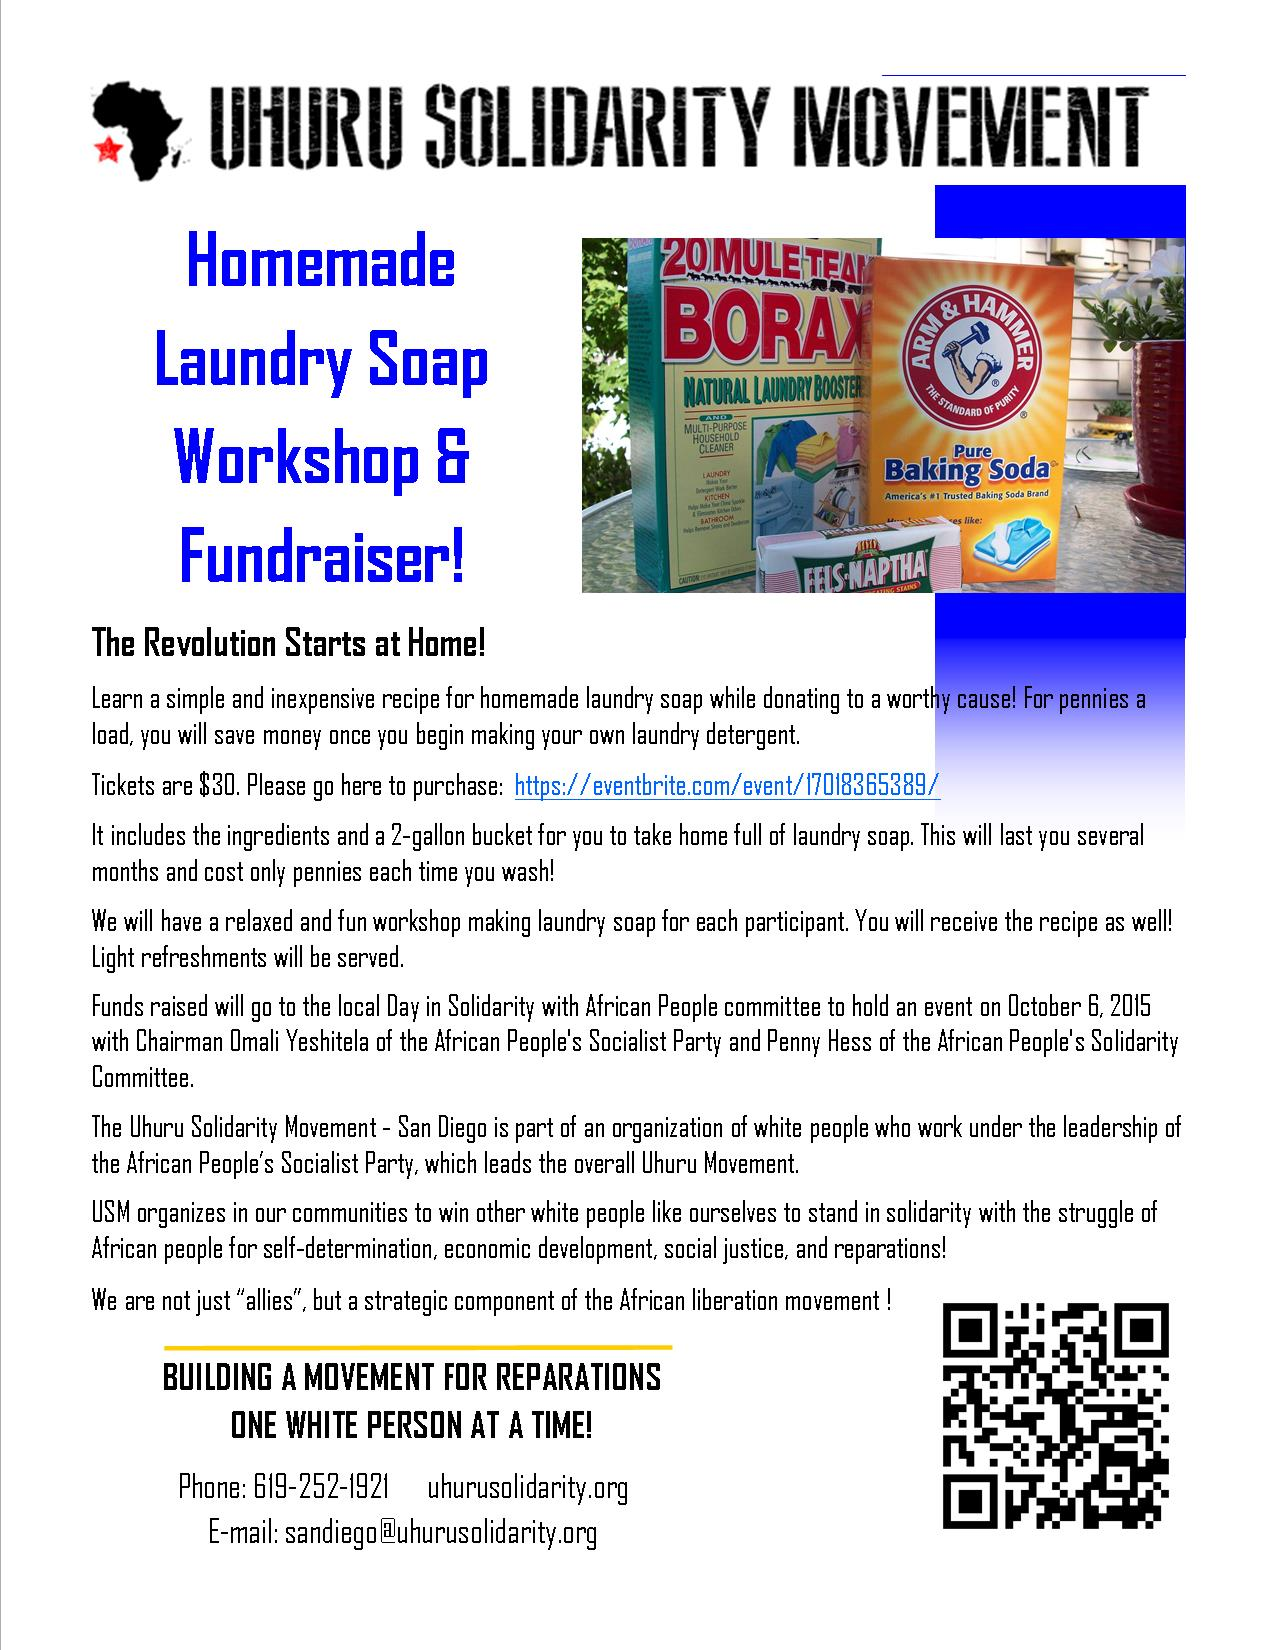 Revolution And Laundry Homemade Laundry Soap Workshop And